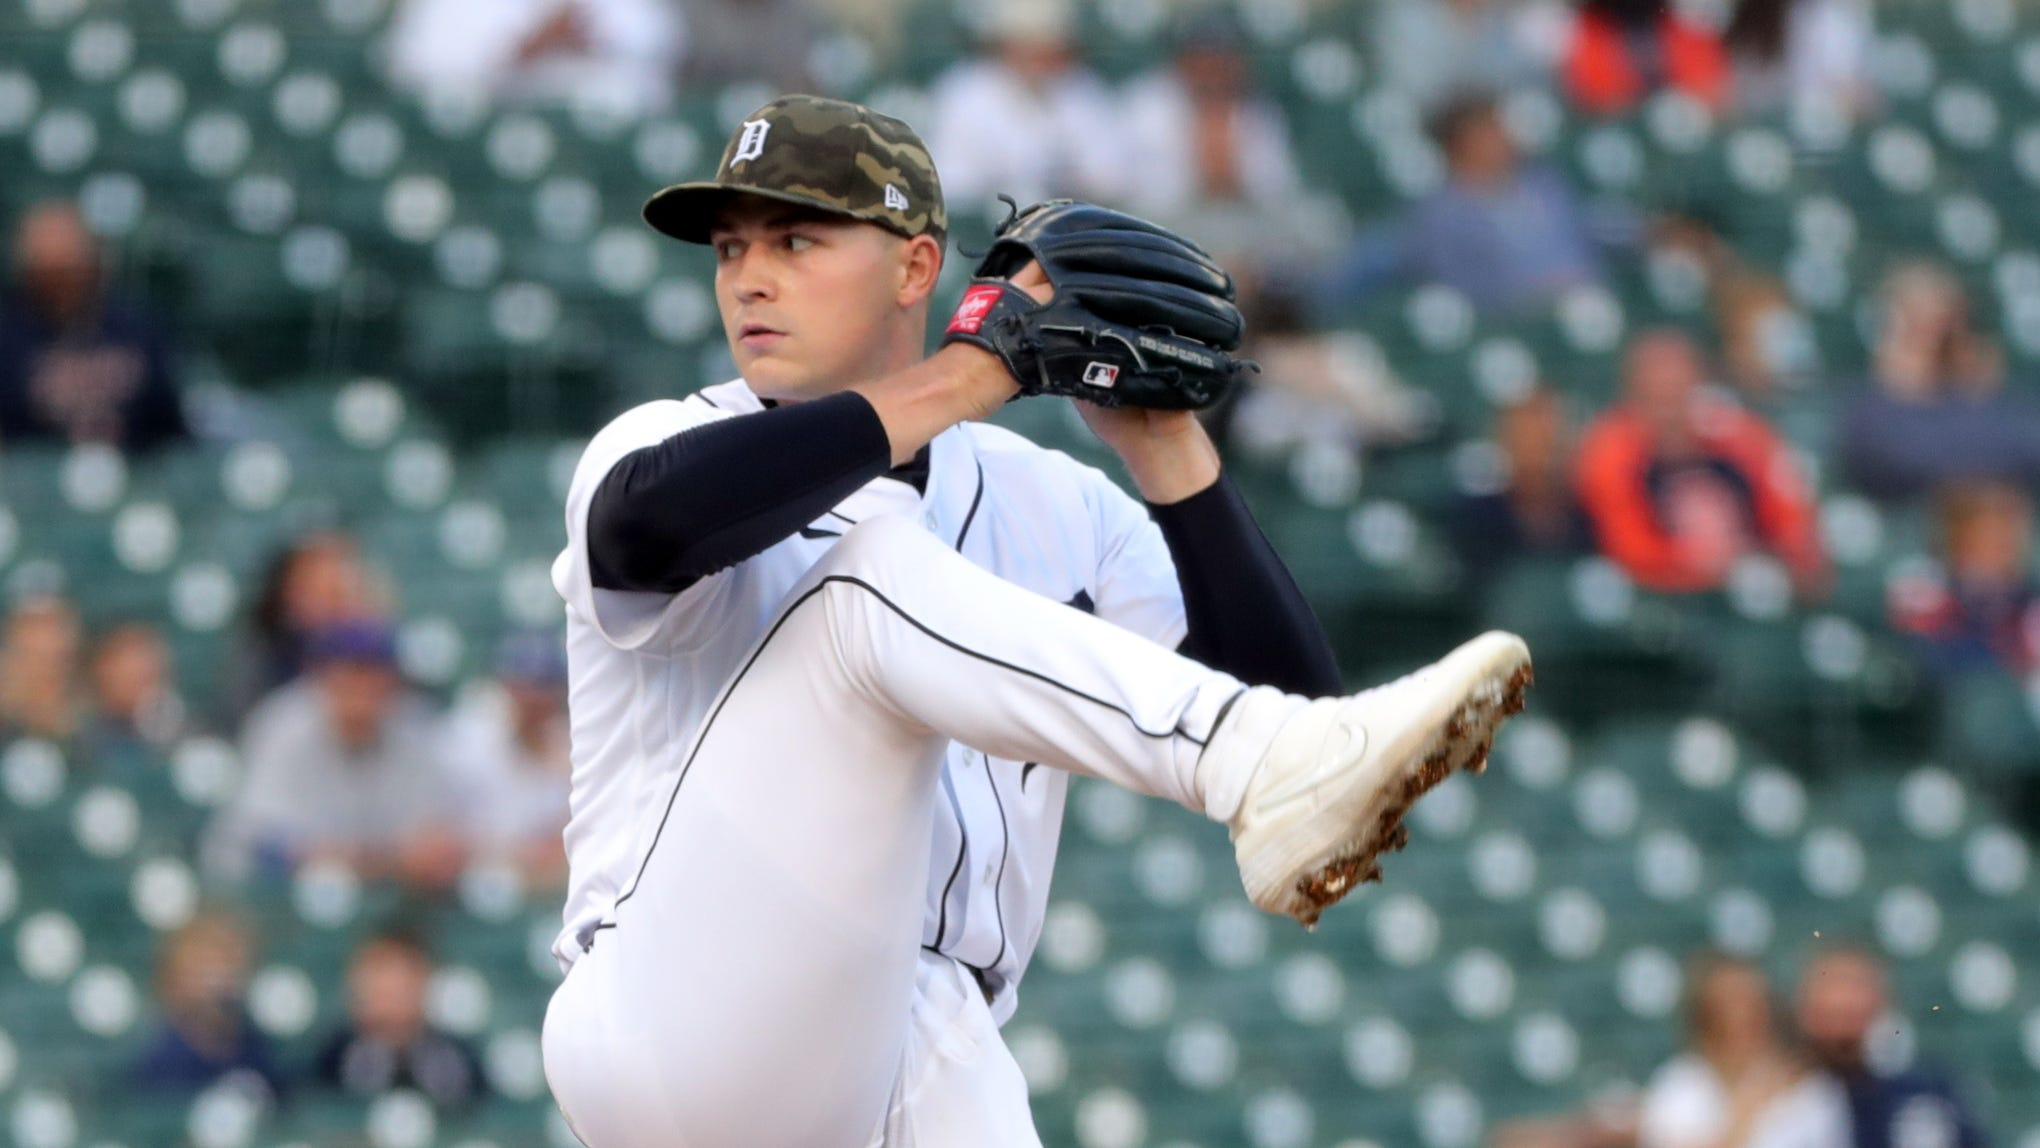 Detroit Tigers starter Tarik Skubal pitches against the Chicago Cubs during the first inning Friday, May 14, 2021 at Comerica Park in Detroit.